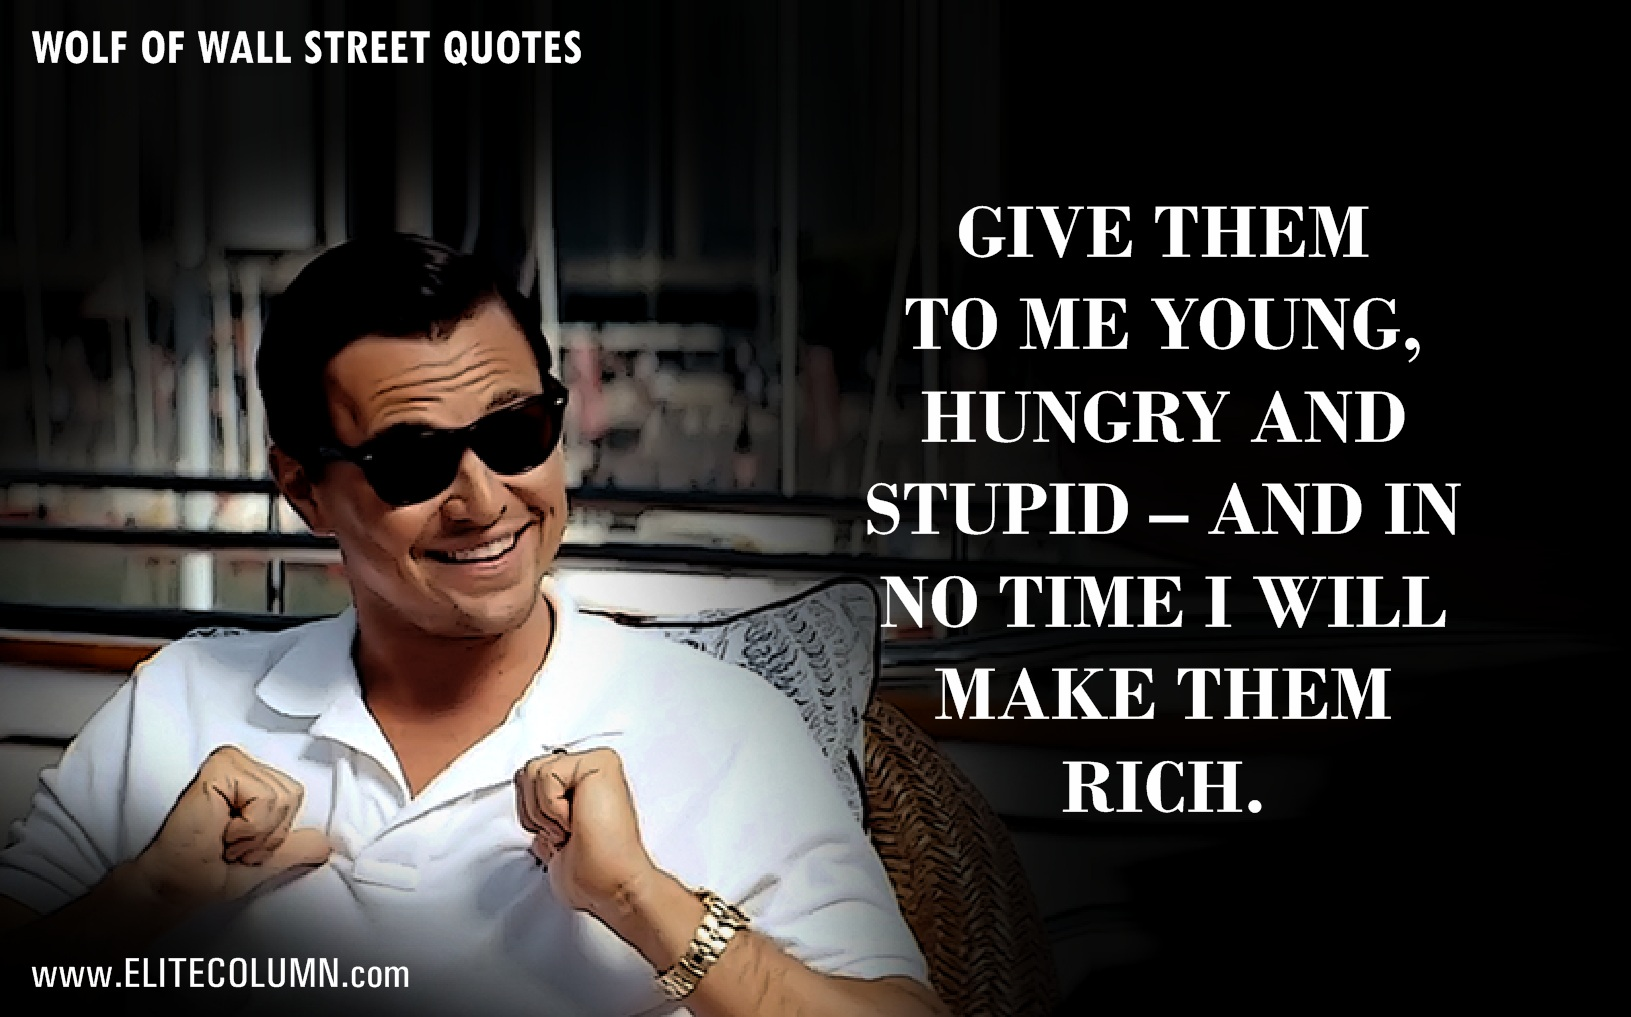 The Wolf Of Wall Street Quotes (9)